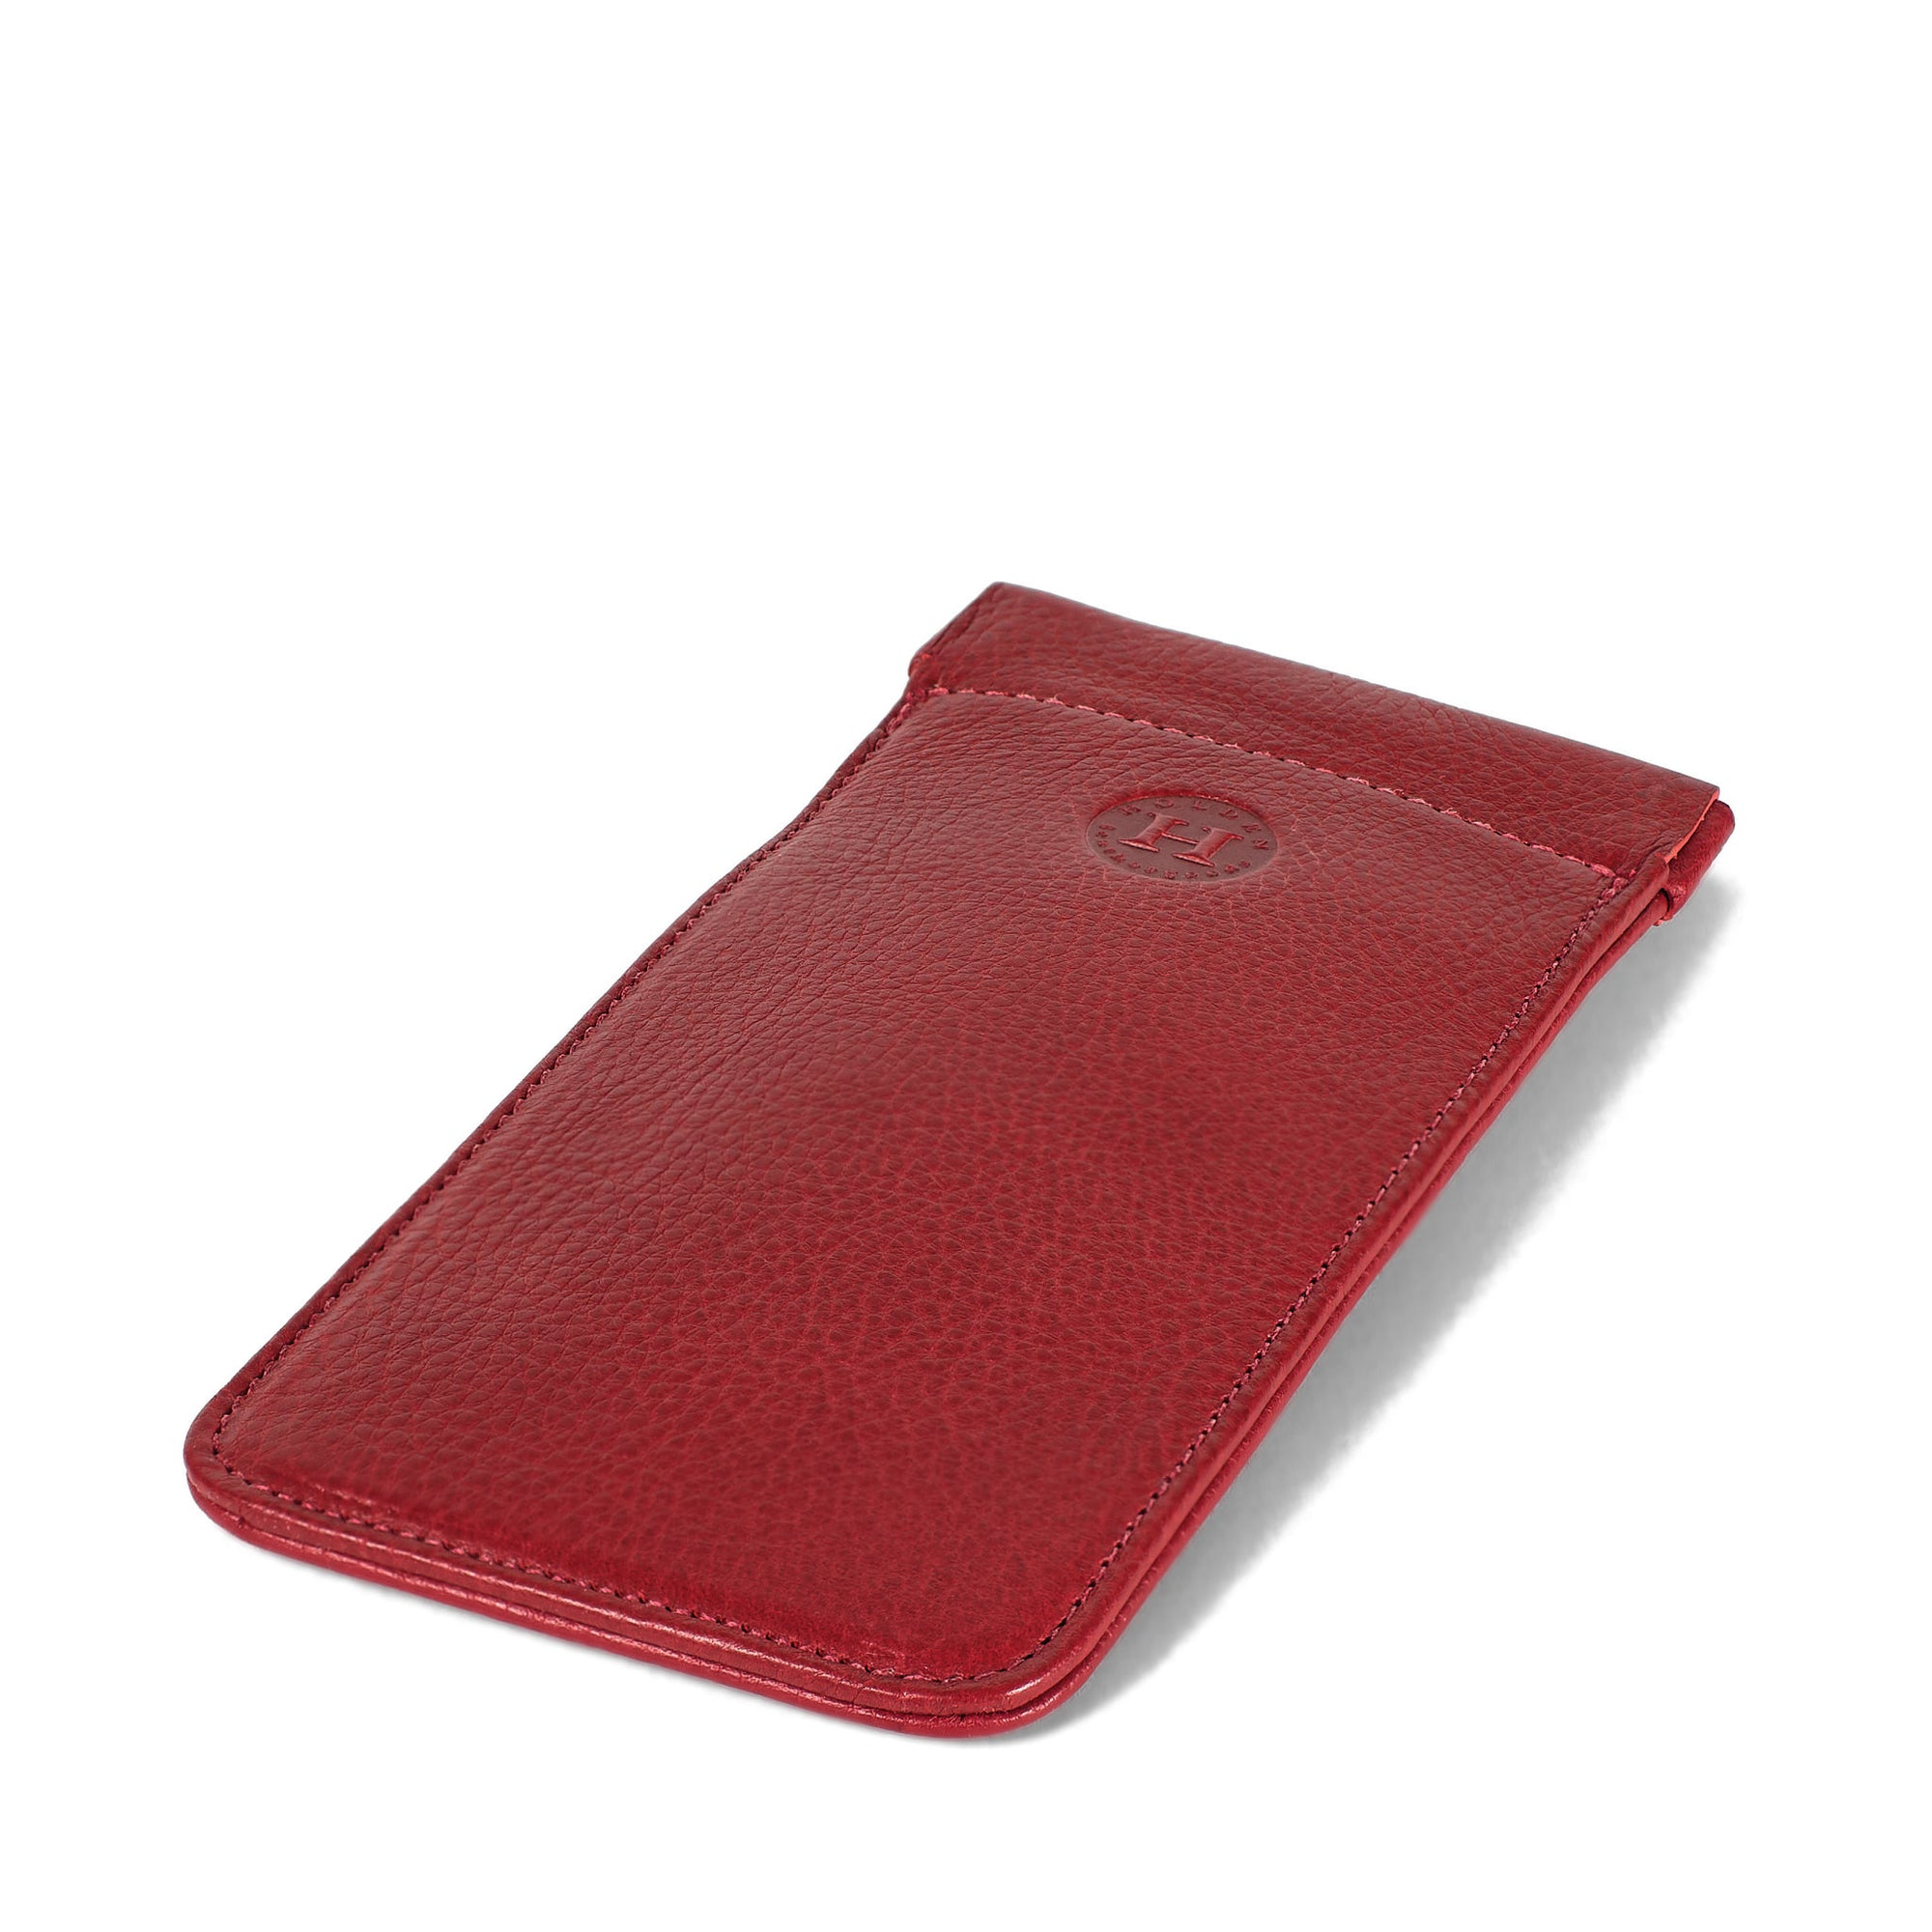 Holden Snap Glasses Case - Red